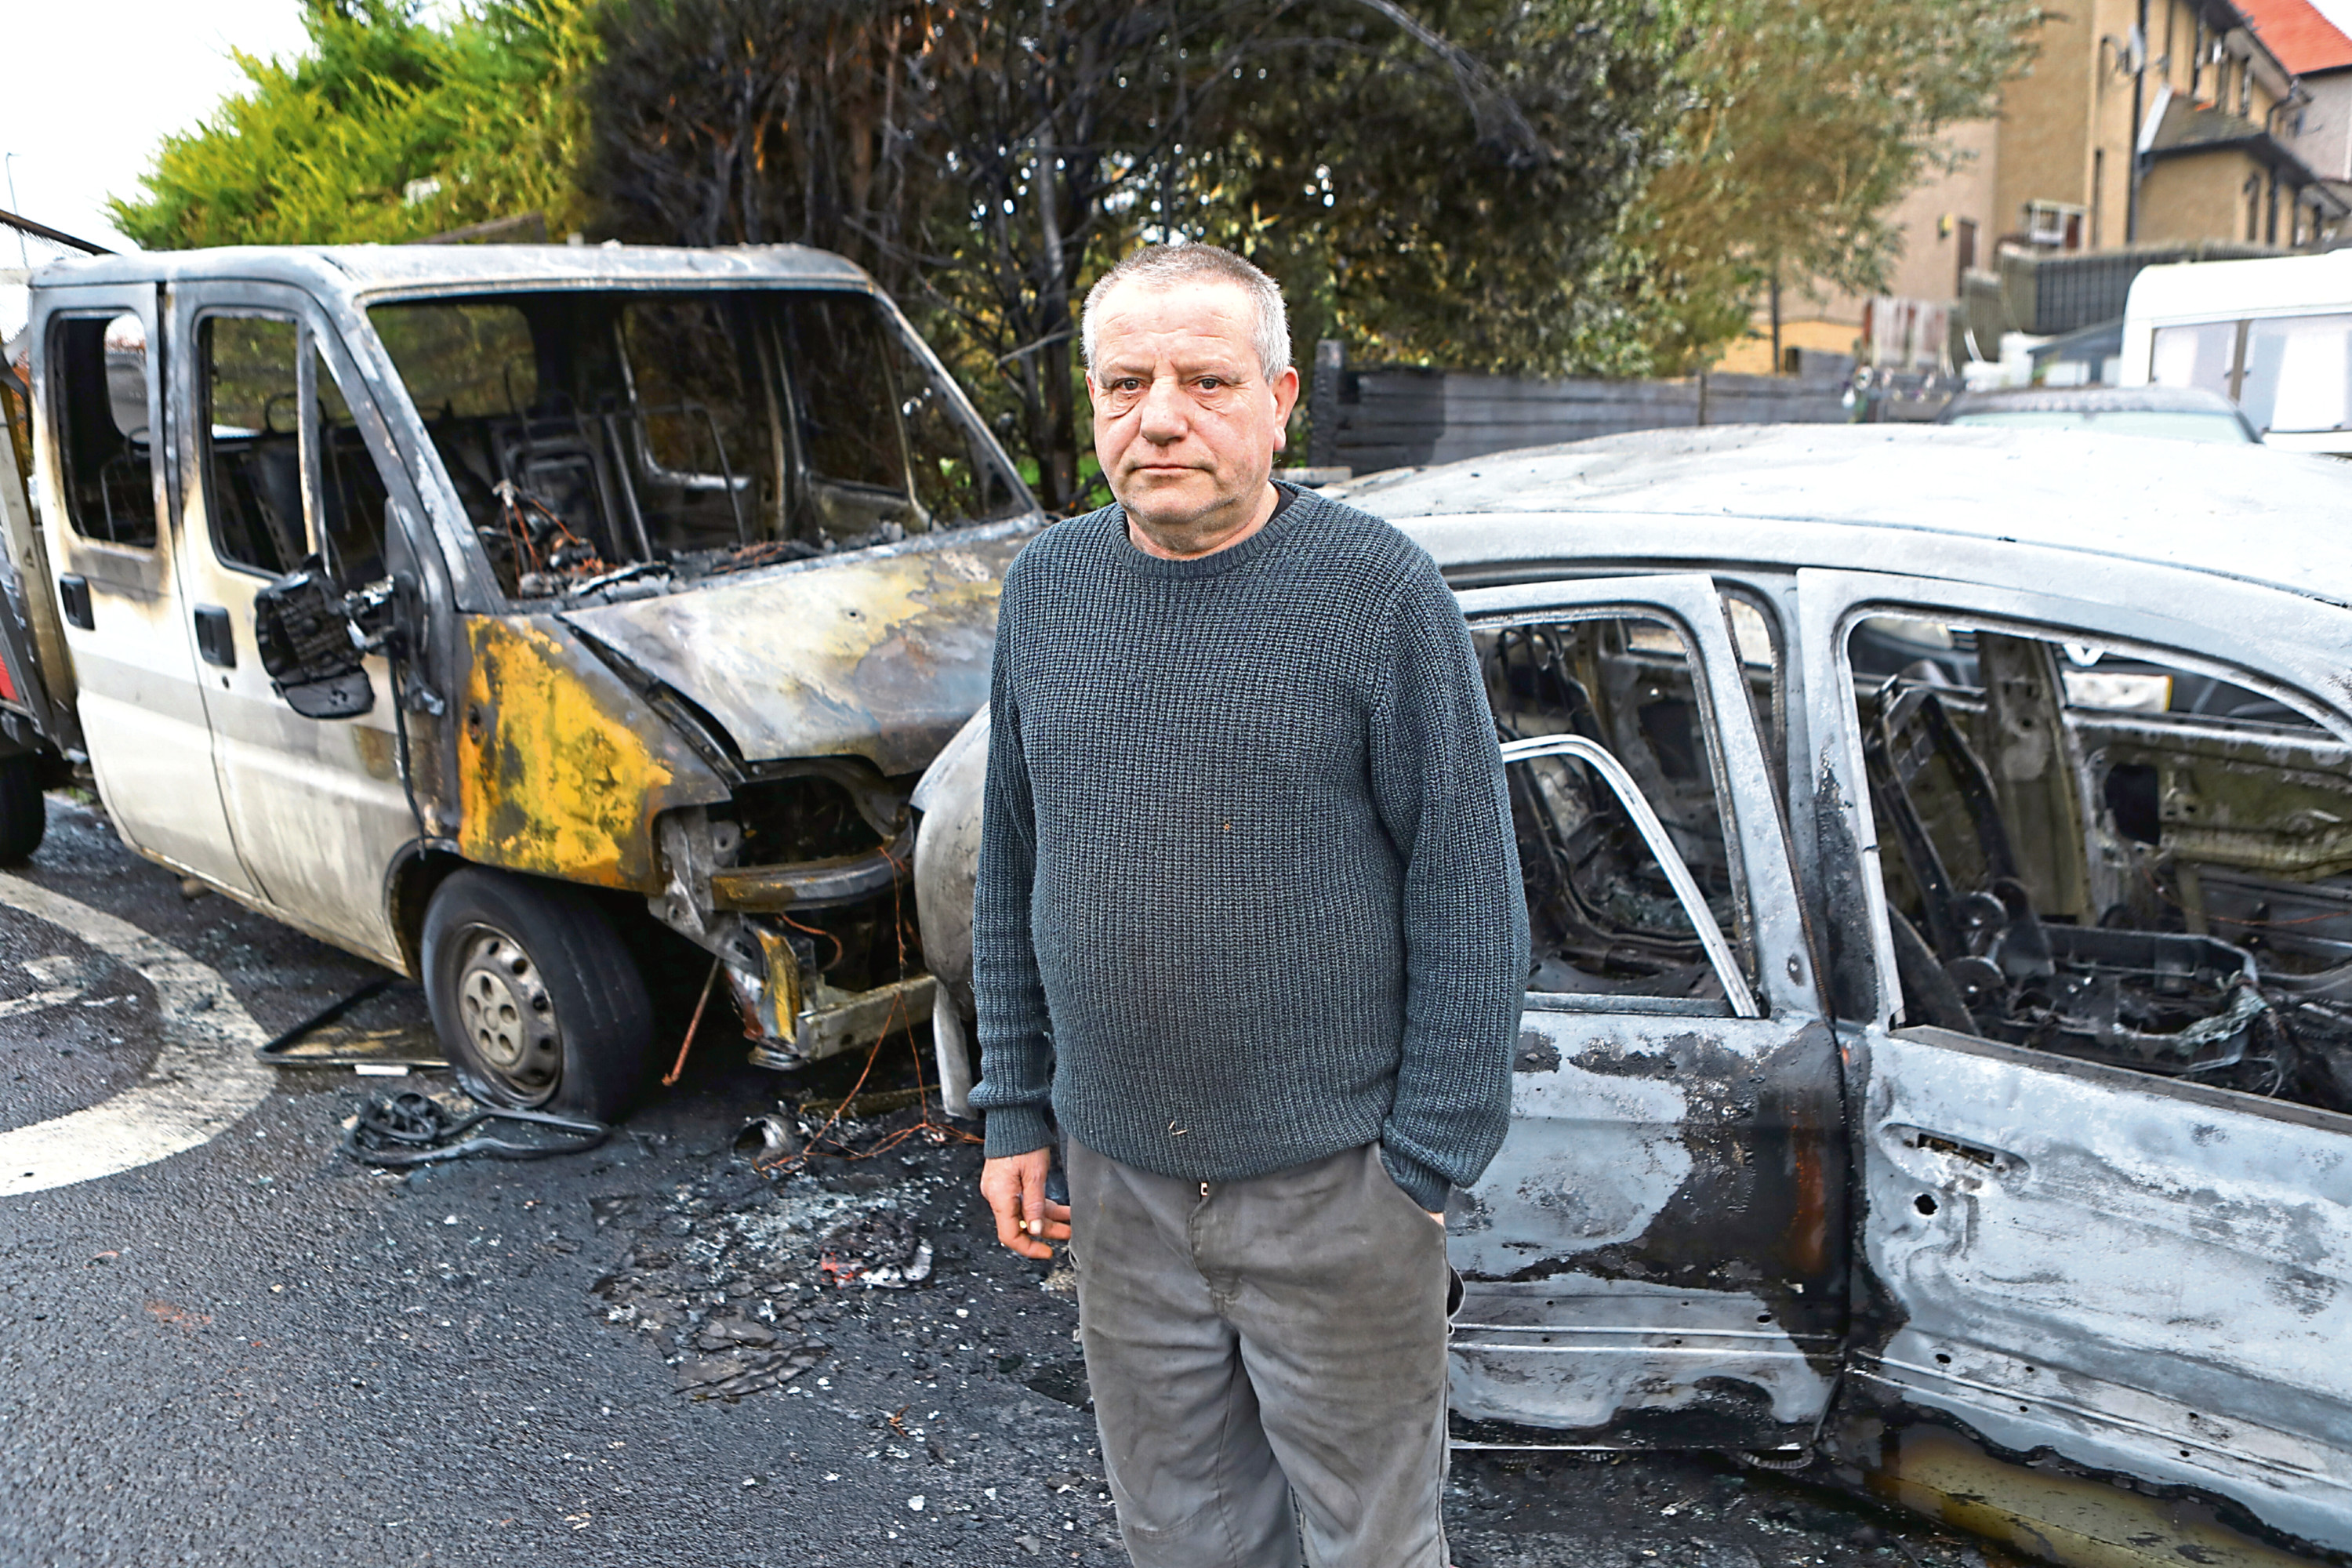 Ian Shand beside the fire damaged car and pick up truck in Dryburgh Place.